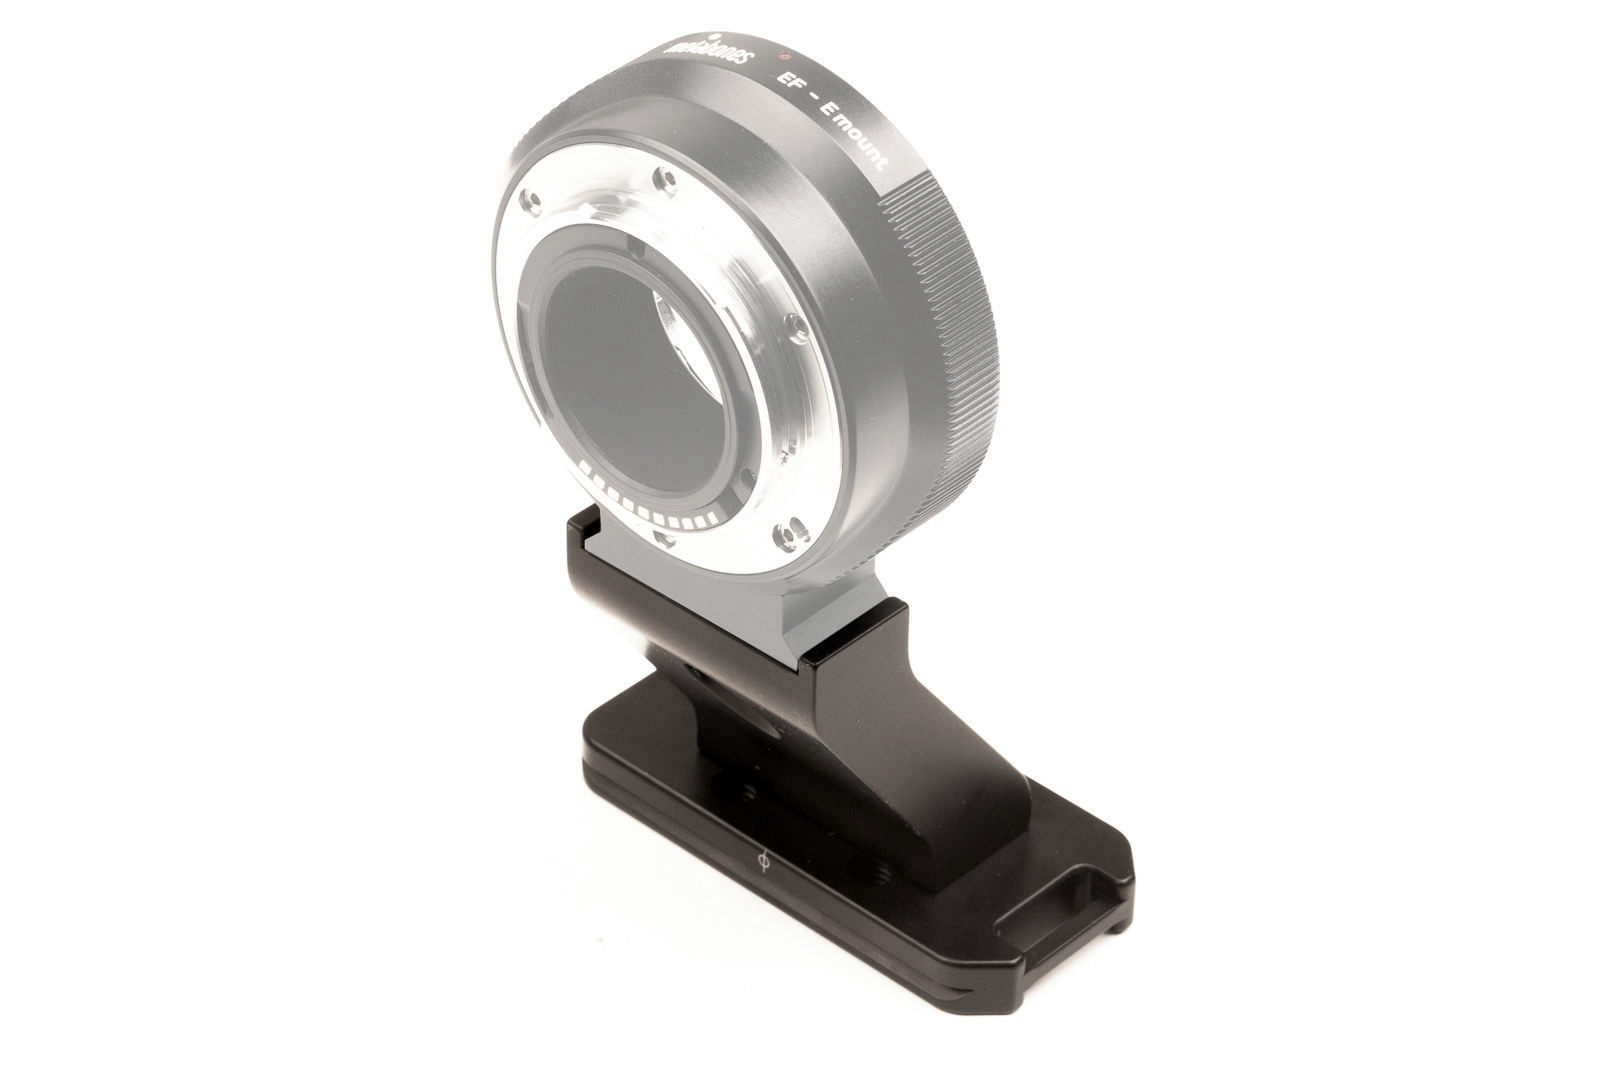 Hejnar Foot Assembly for Metabones Adapter rear view